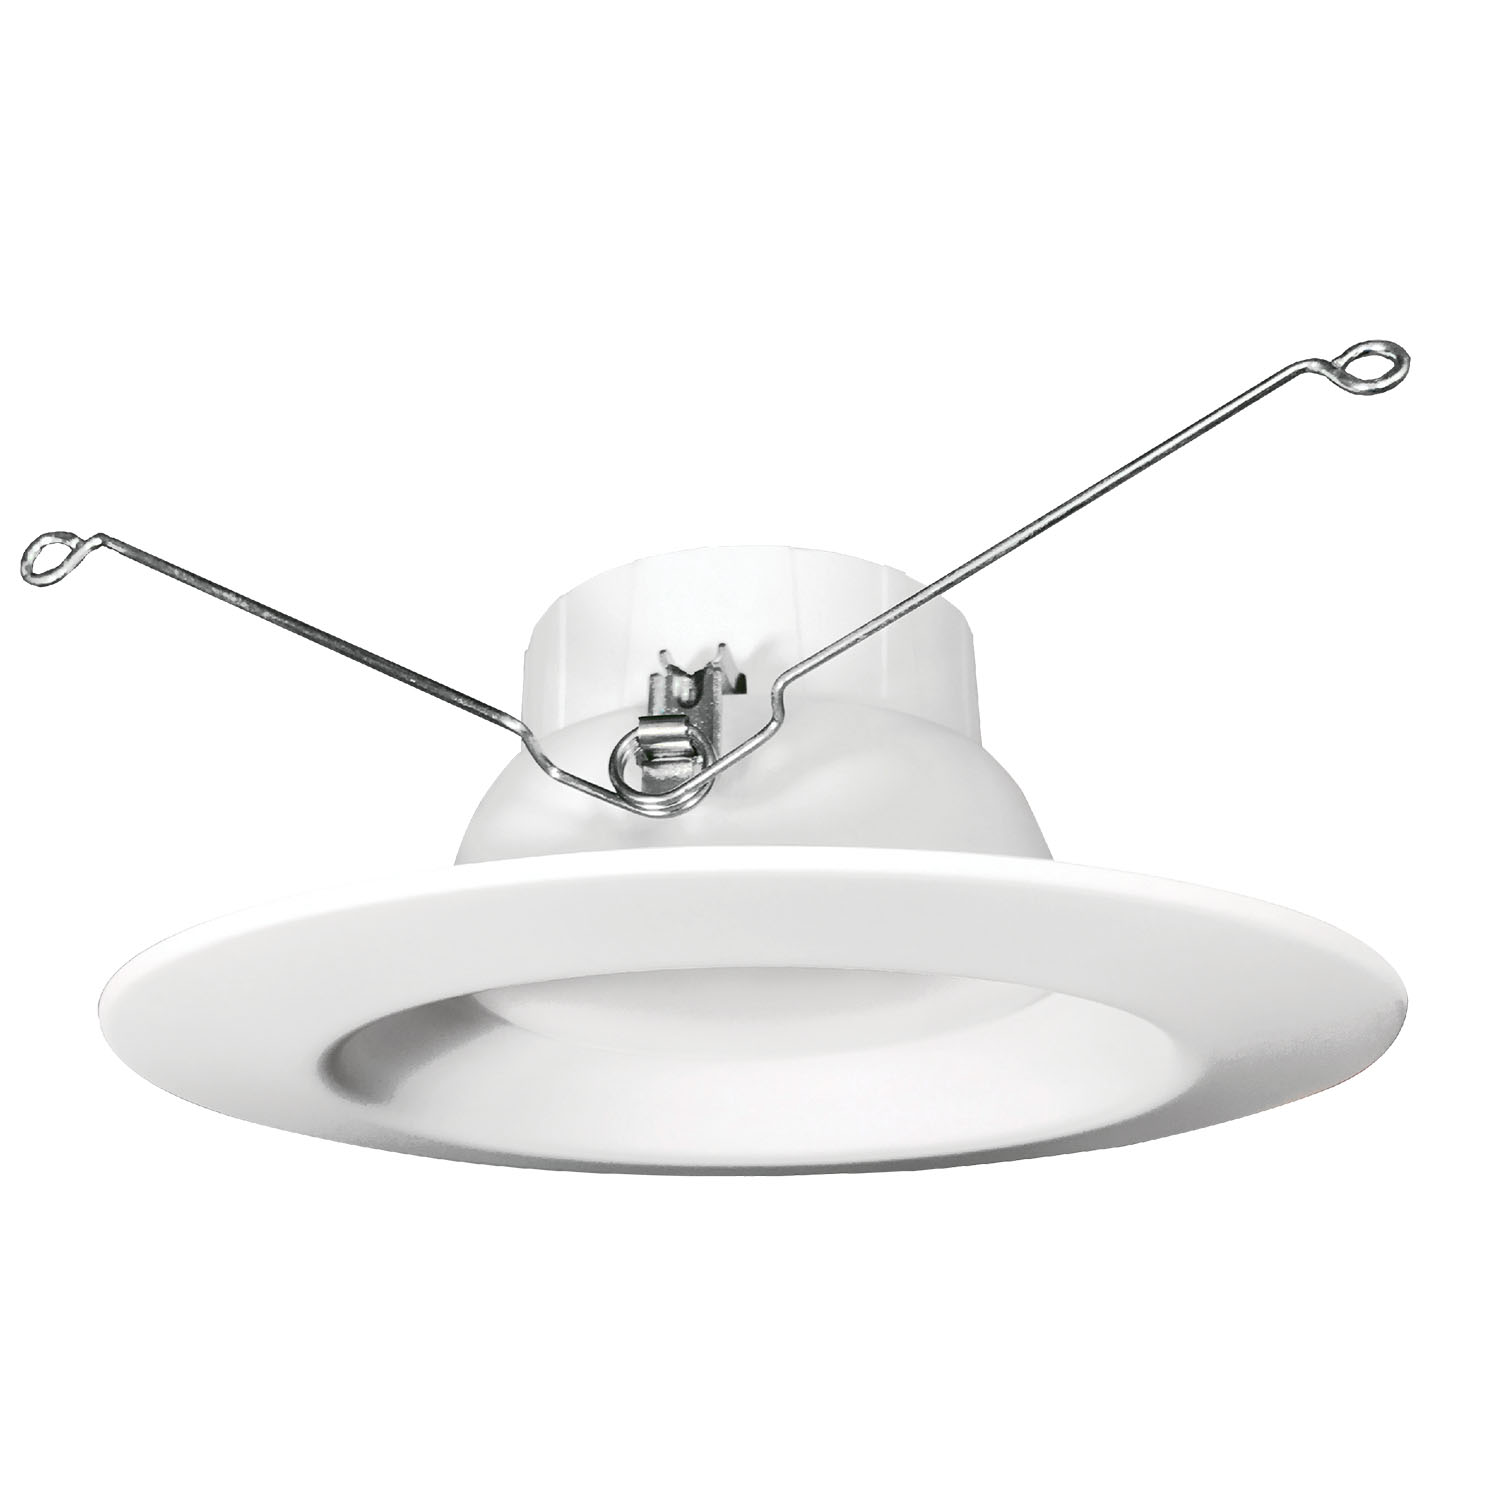 "DL6FR12/950/ECO/LED2 99644 6"" Retrofit Downlight, 12W, 5000K, Dimmable ProLED ECO Series II"